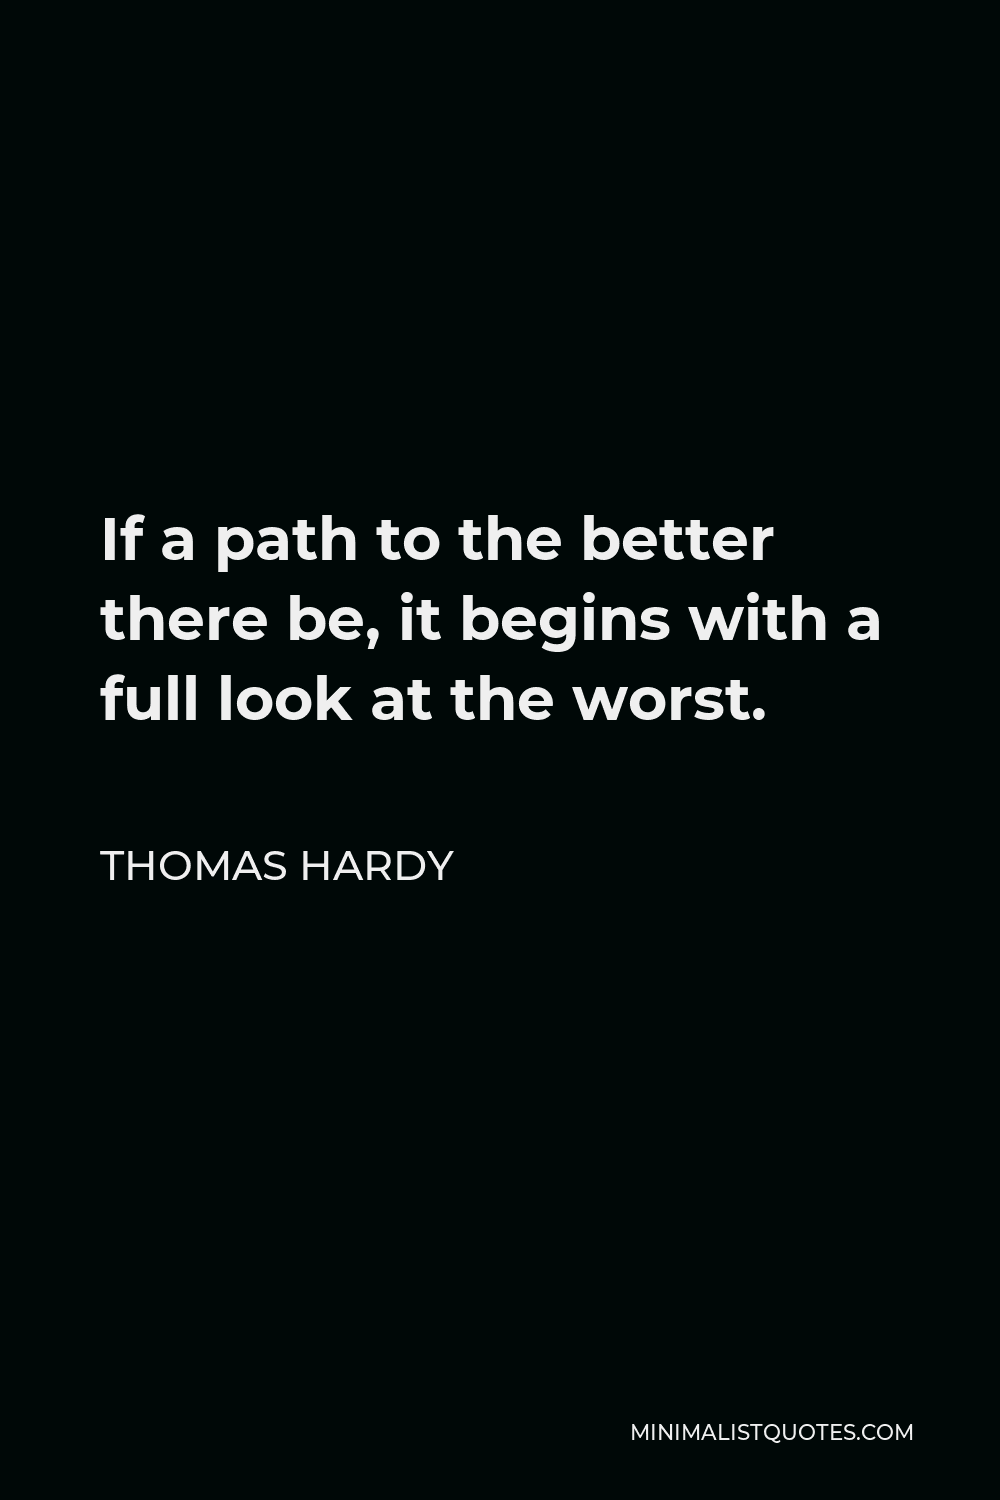 Thomas Hardy Quote - If a path to the better there be, it begins with a full look at the worst.